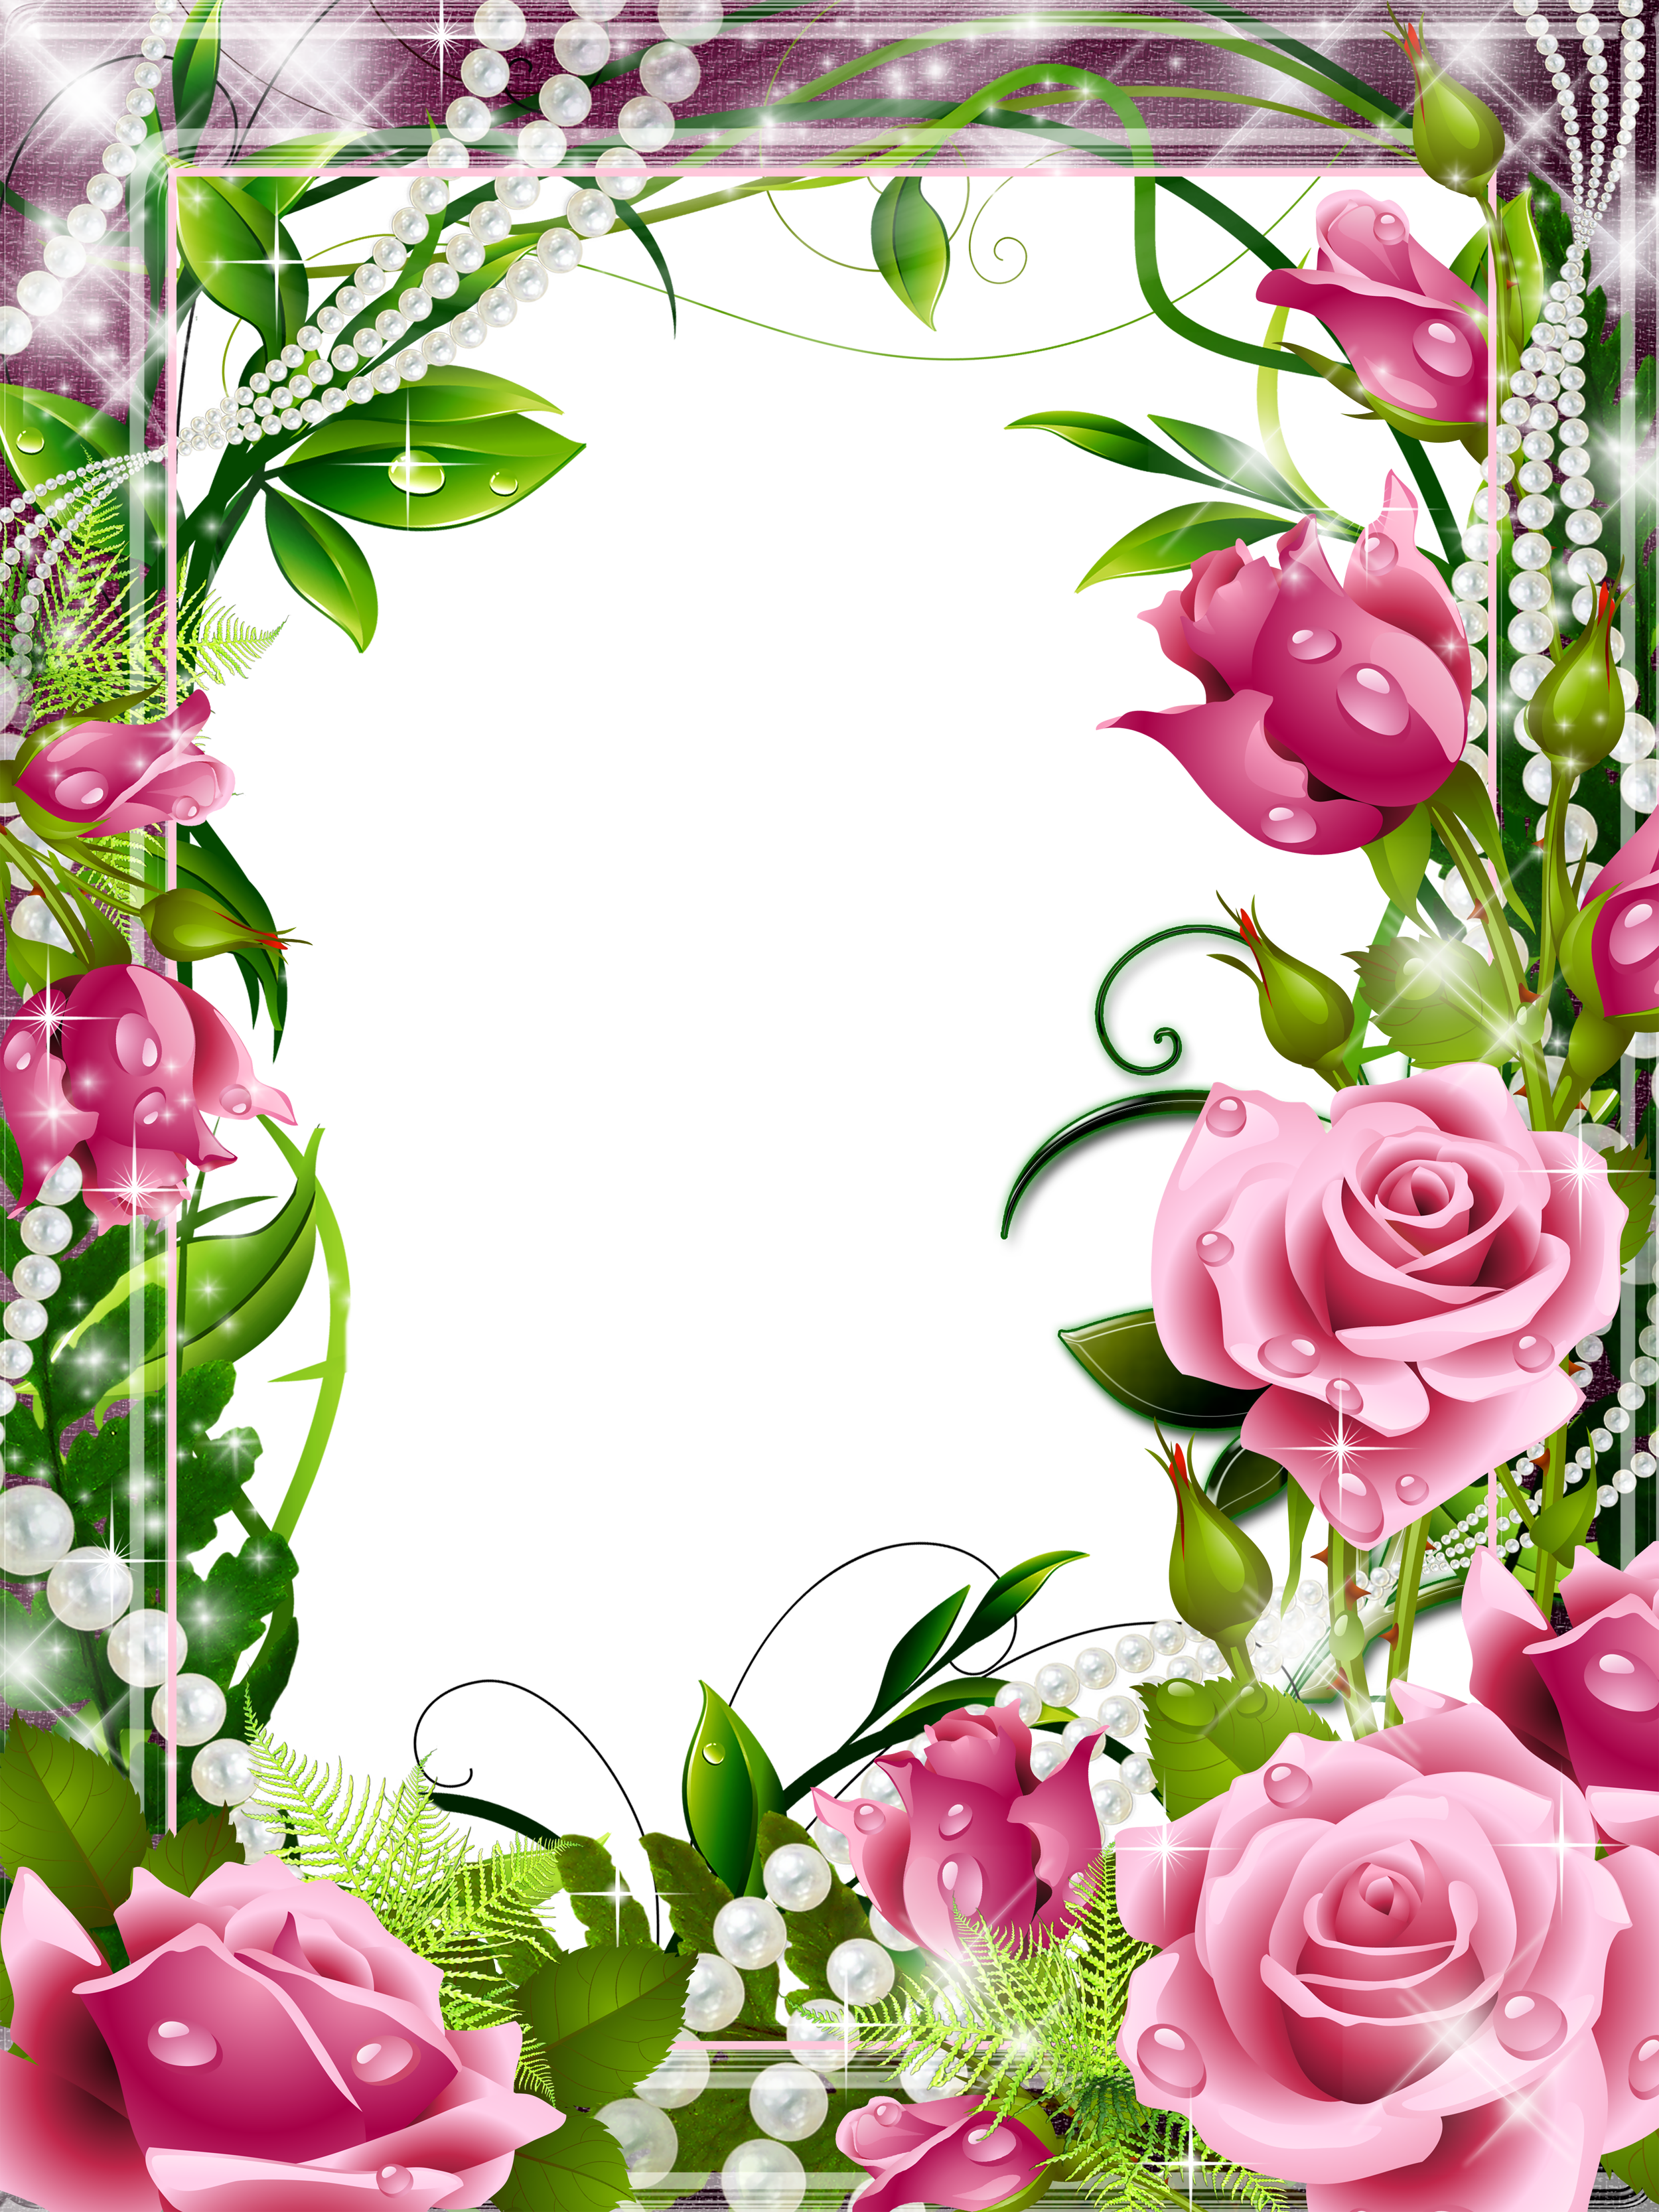 Transparent PNG Photo Frame with Pink Roses.